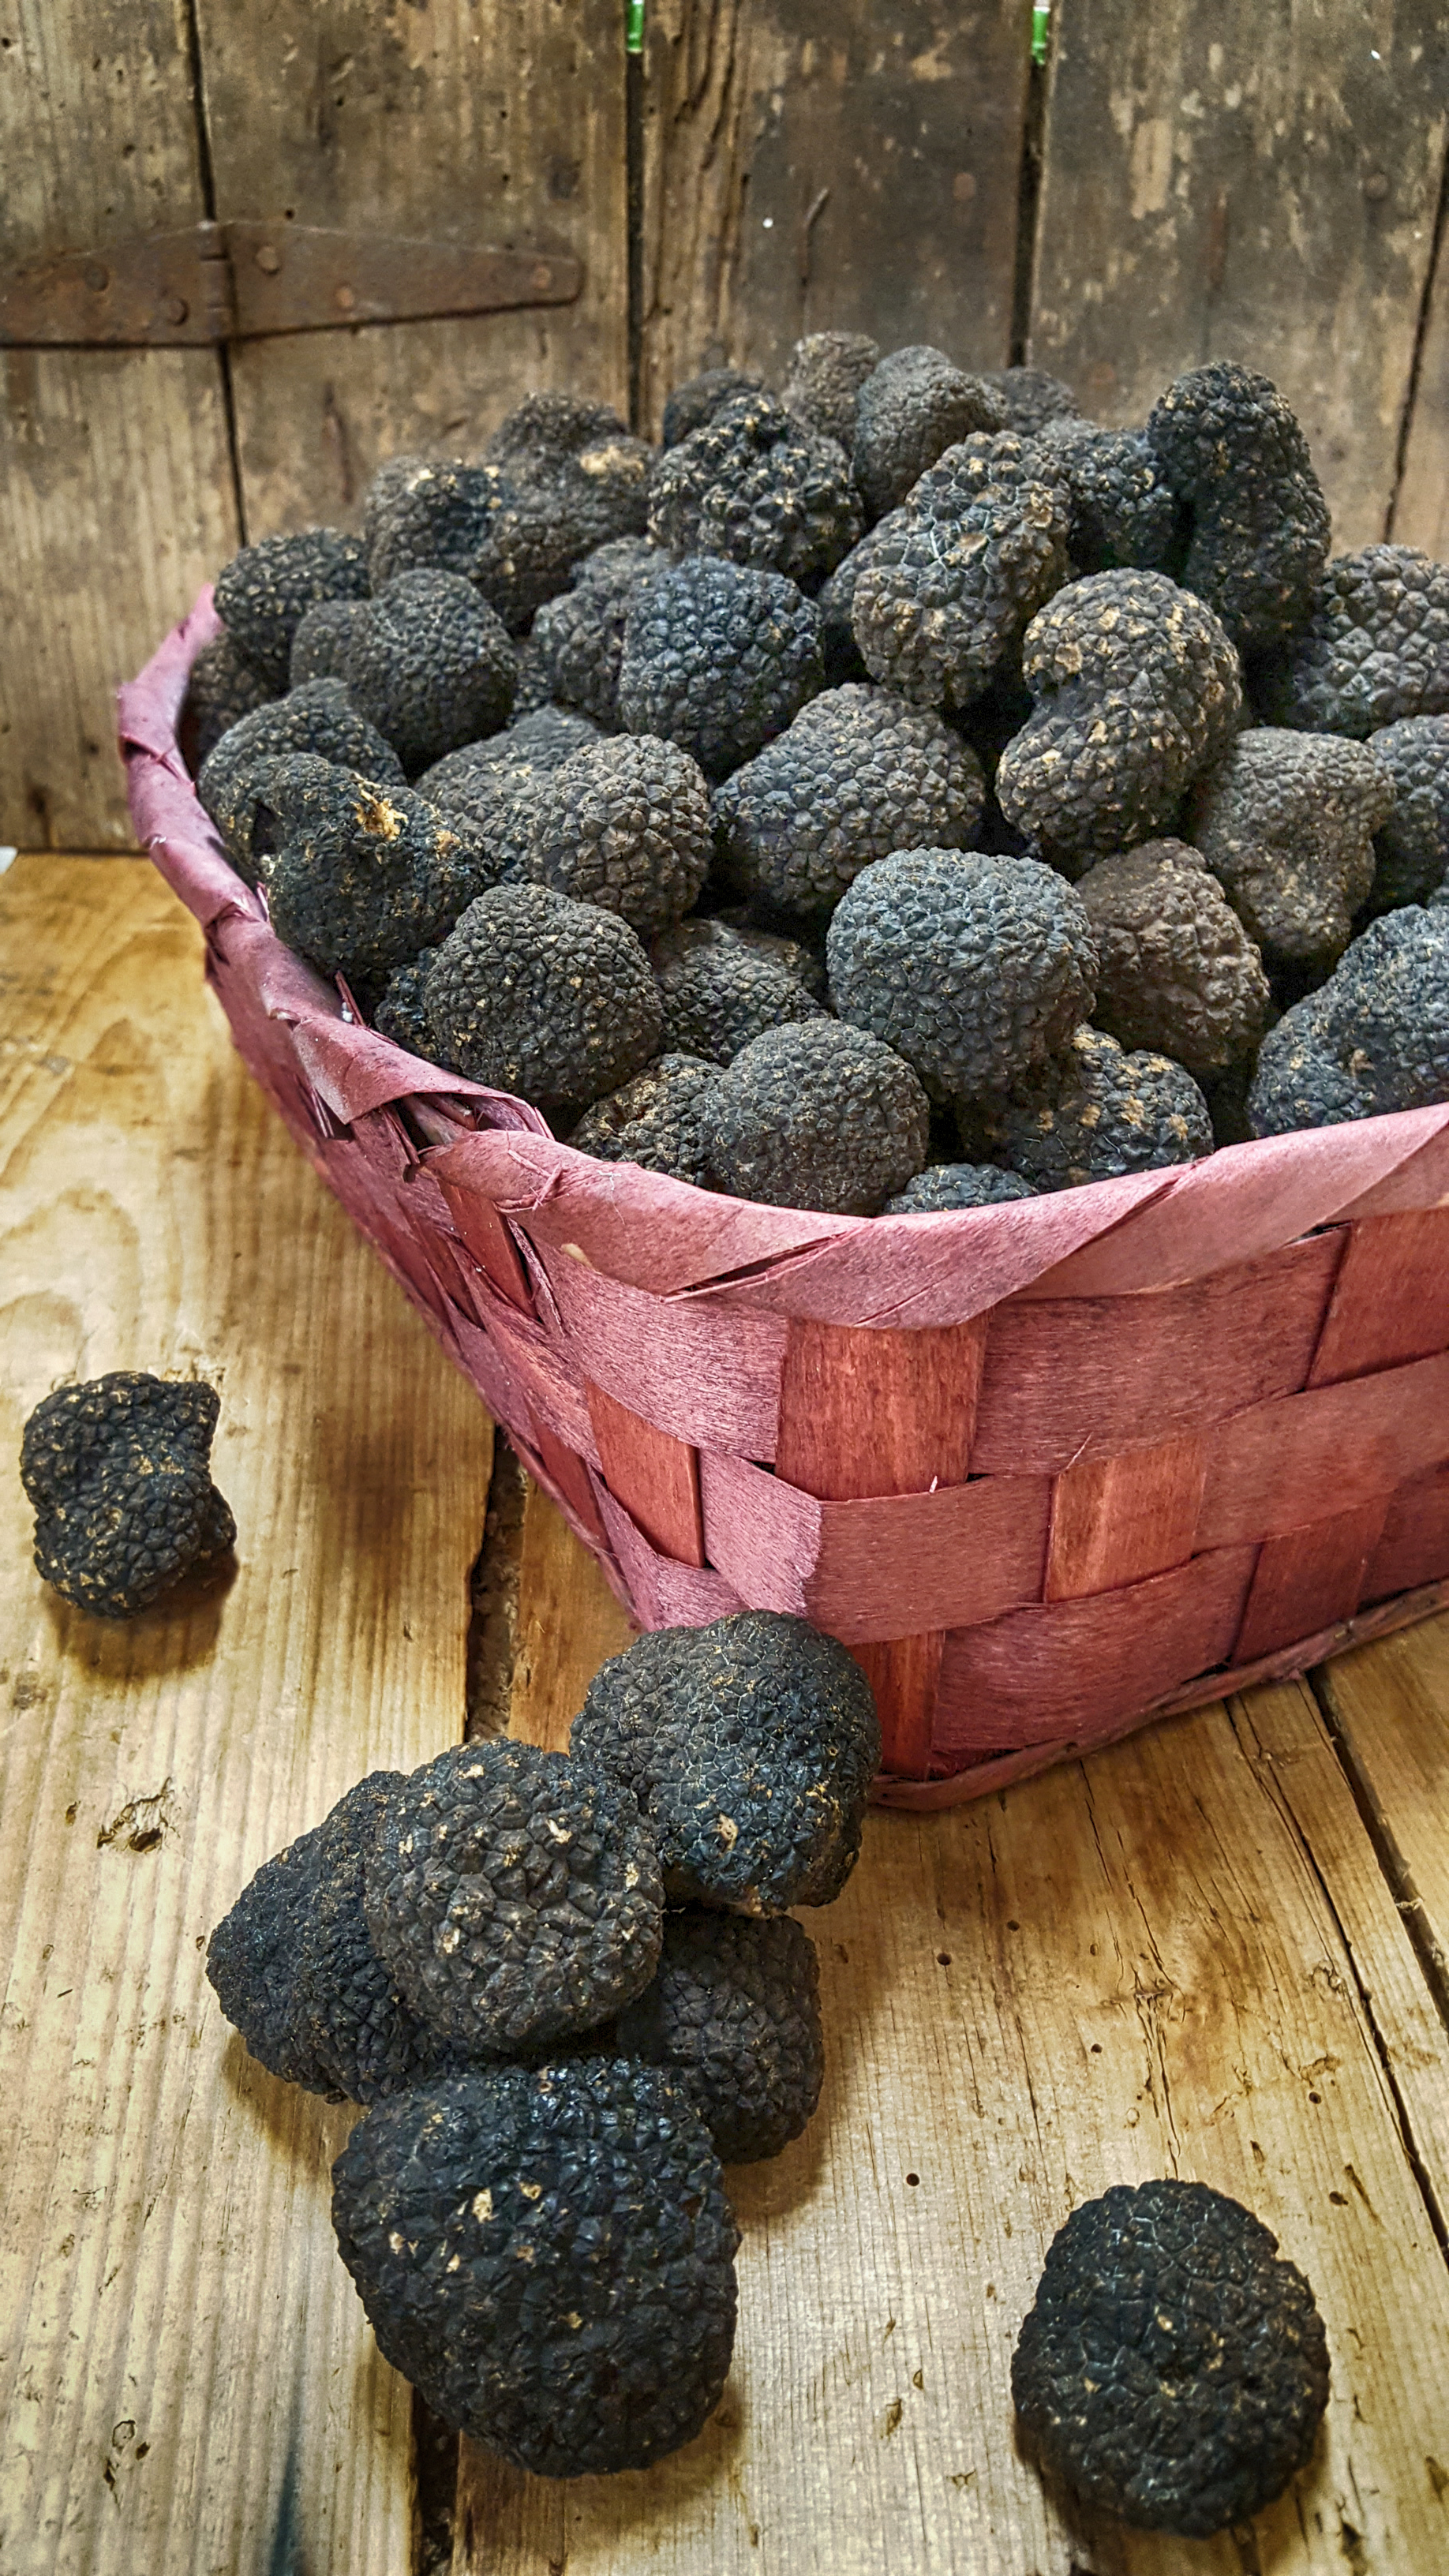 The Last of the Summer Truffles